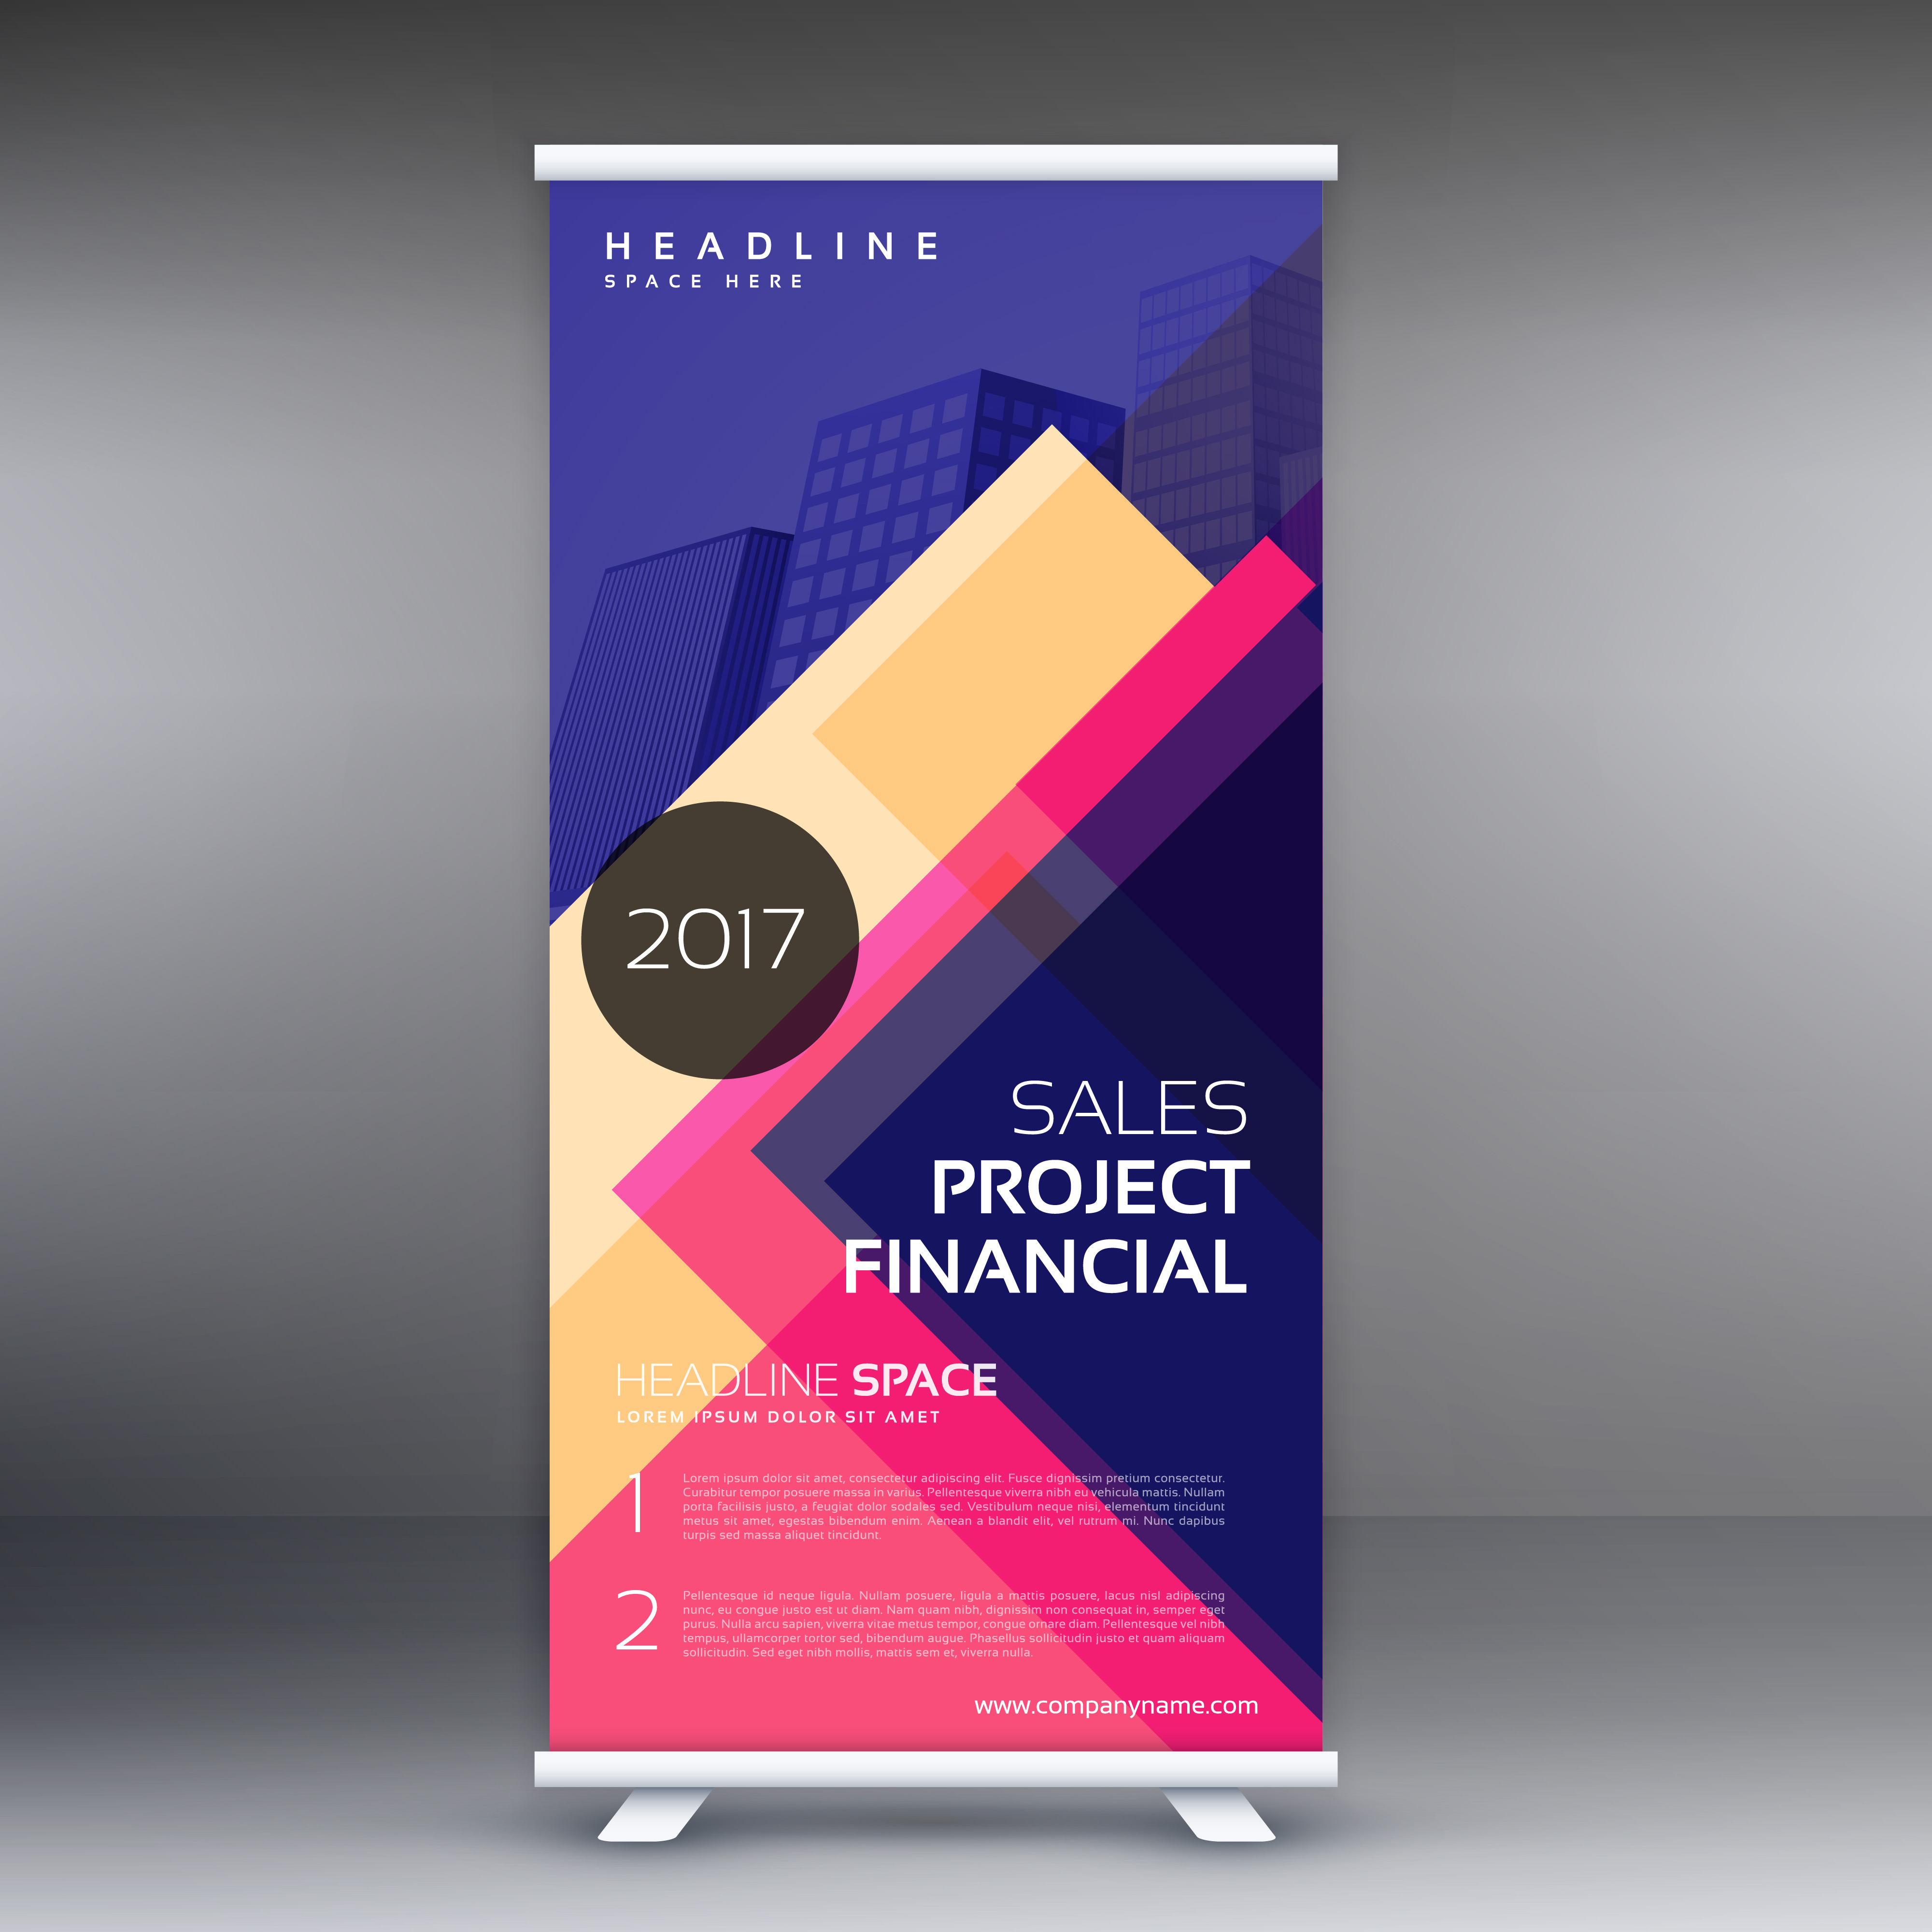 colorful standee roll up banner design template download. Black Bedroom Furniture Sets. Home Design Ideas